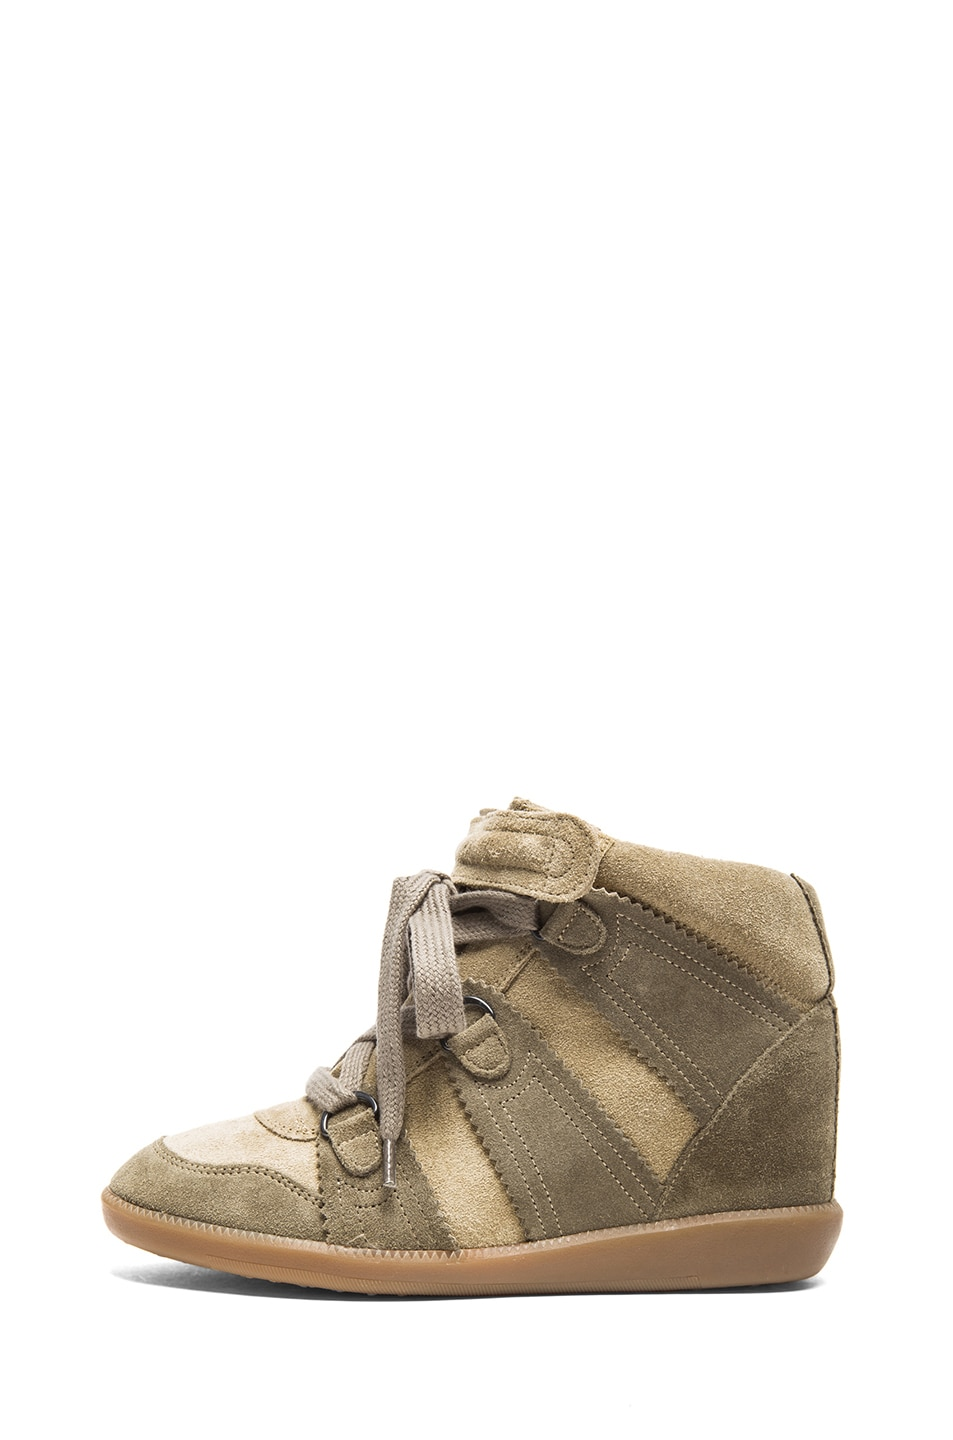 Image 1 of Isabel Marant Bluebel Calfskin Velvet Leather Sneakers in Taupe